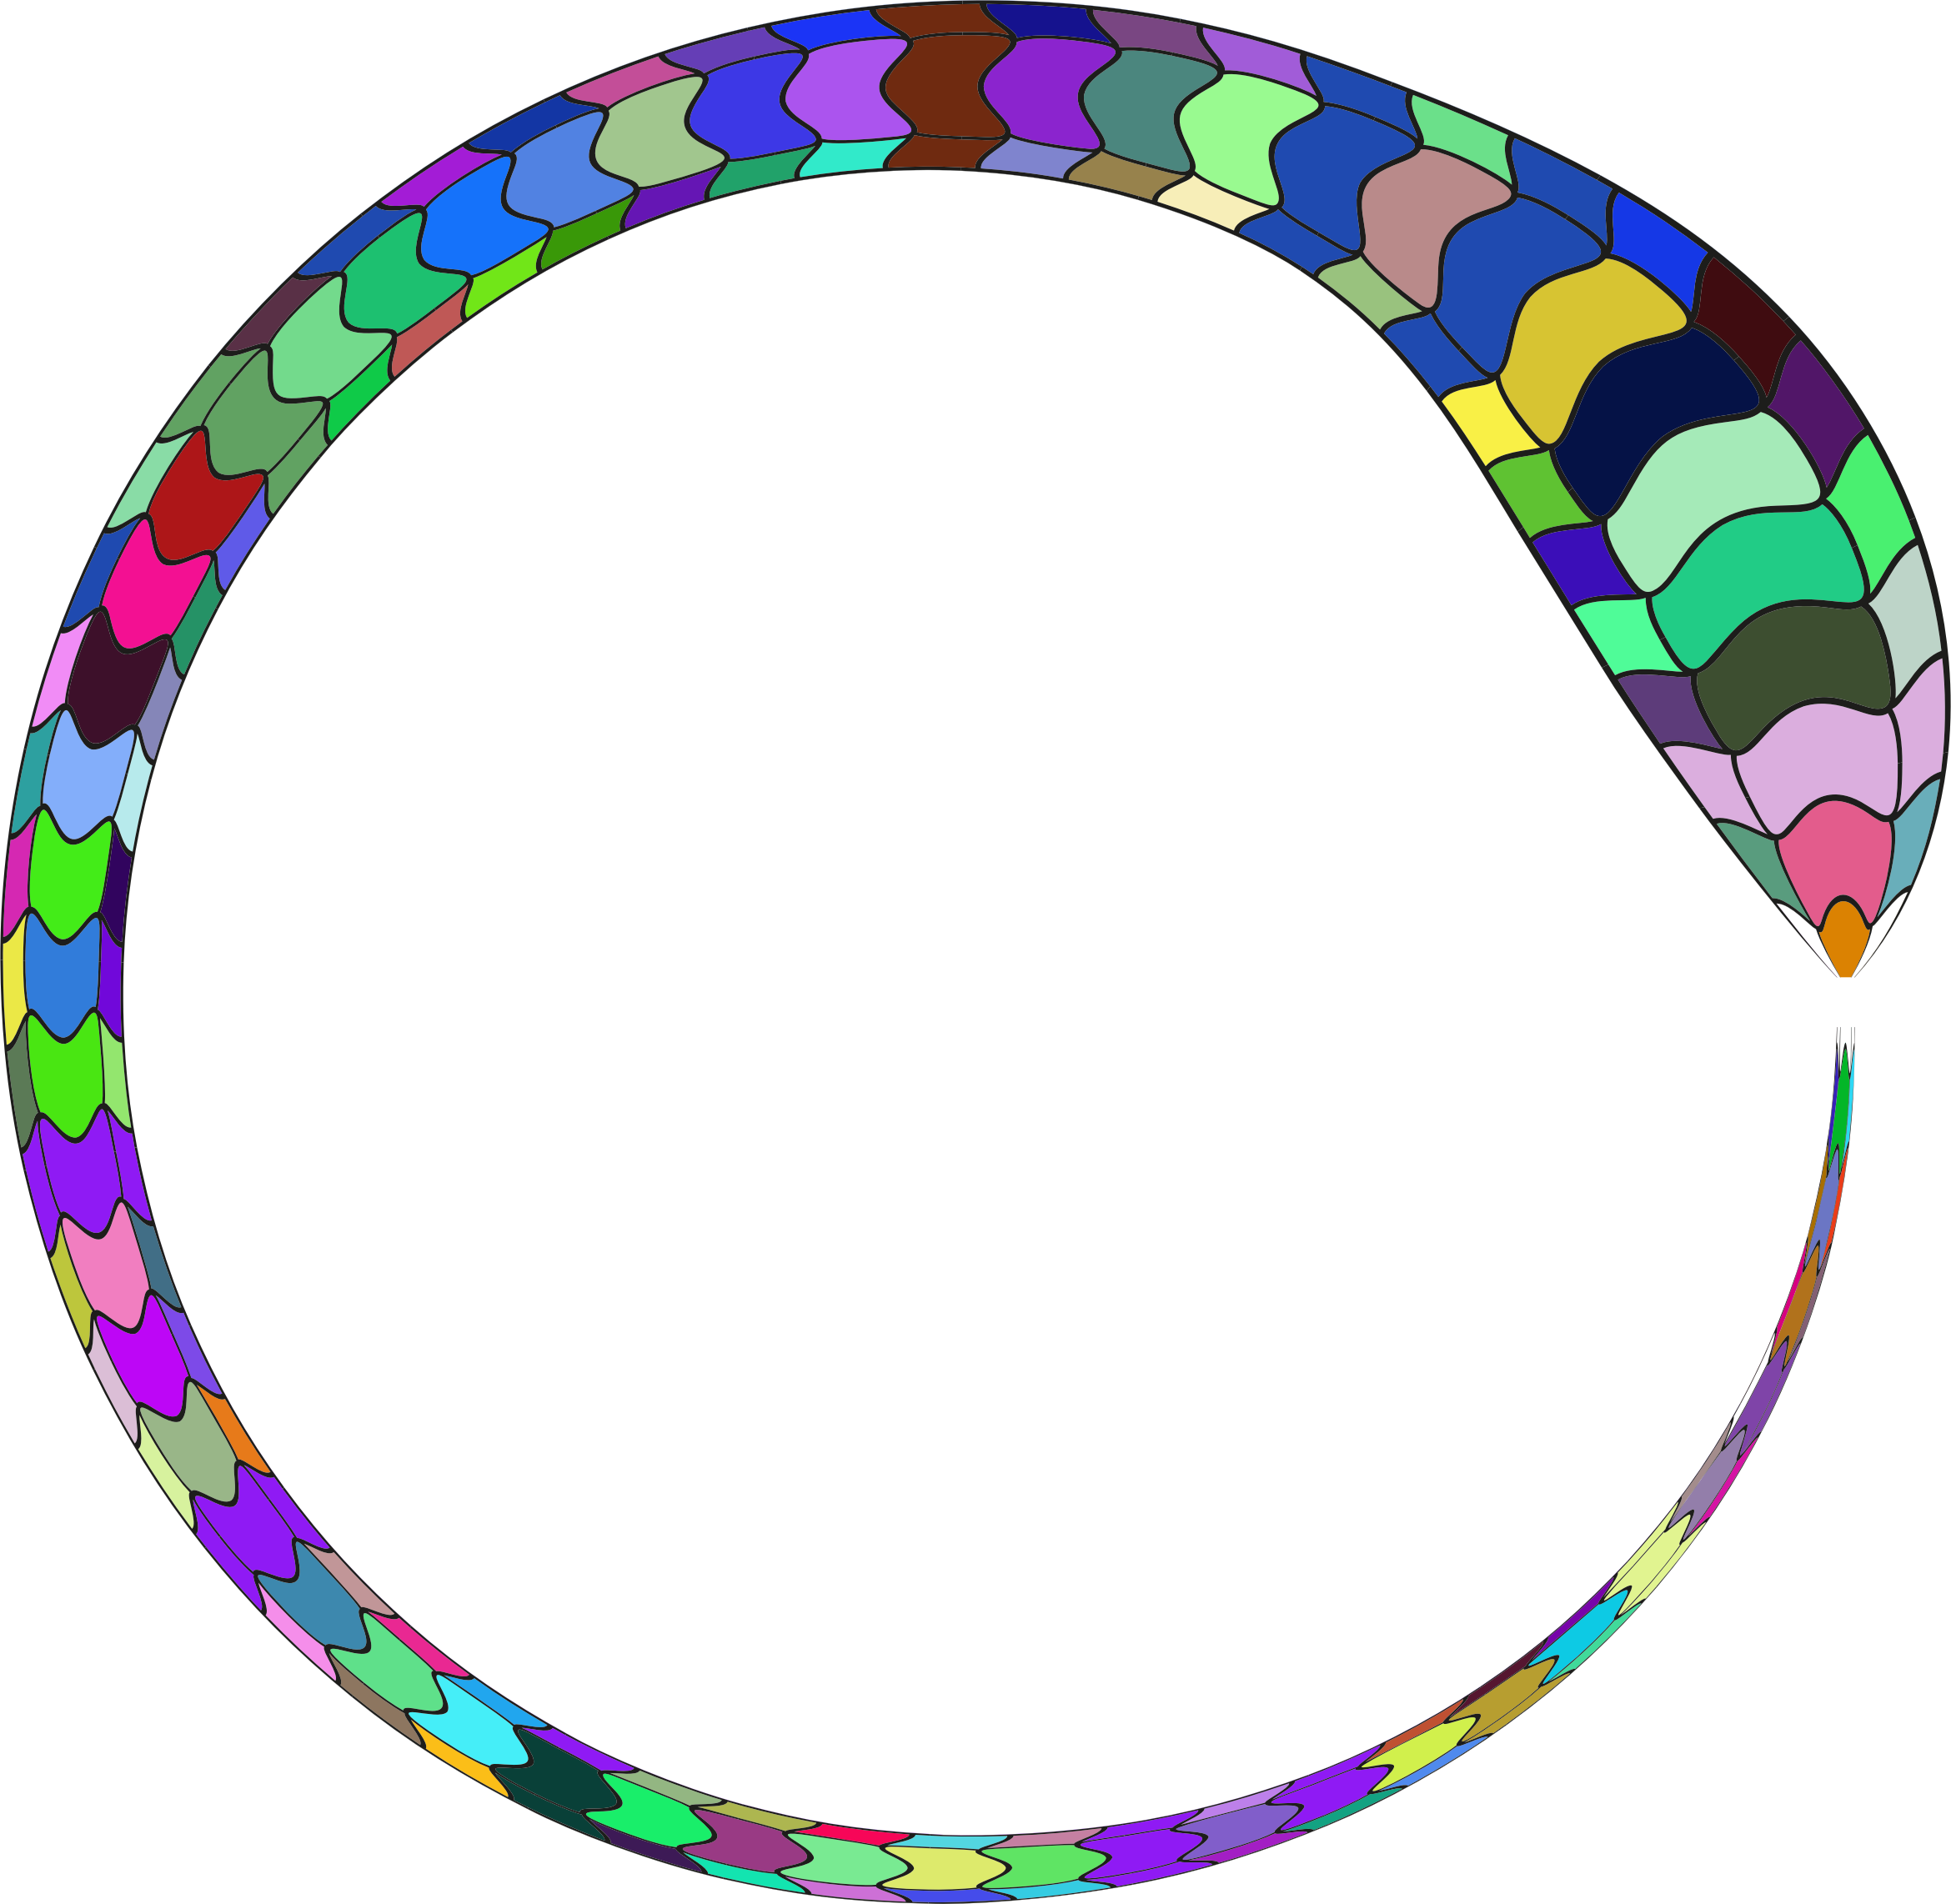 Snake clipart frame. Prismatic icons png free